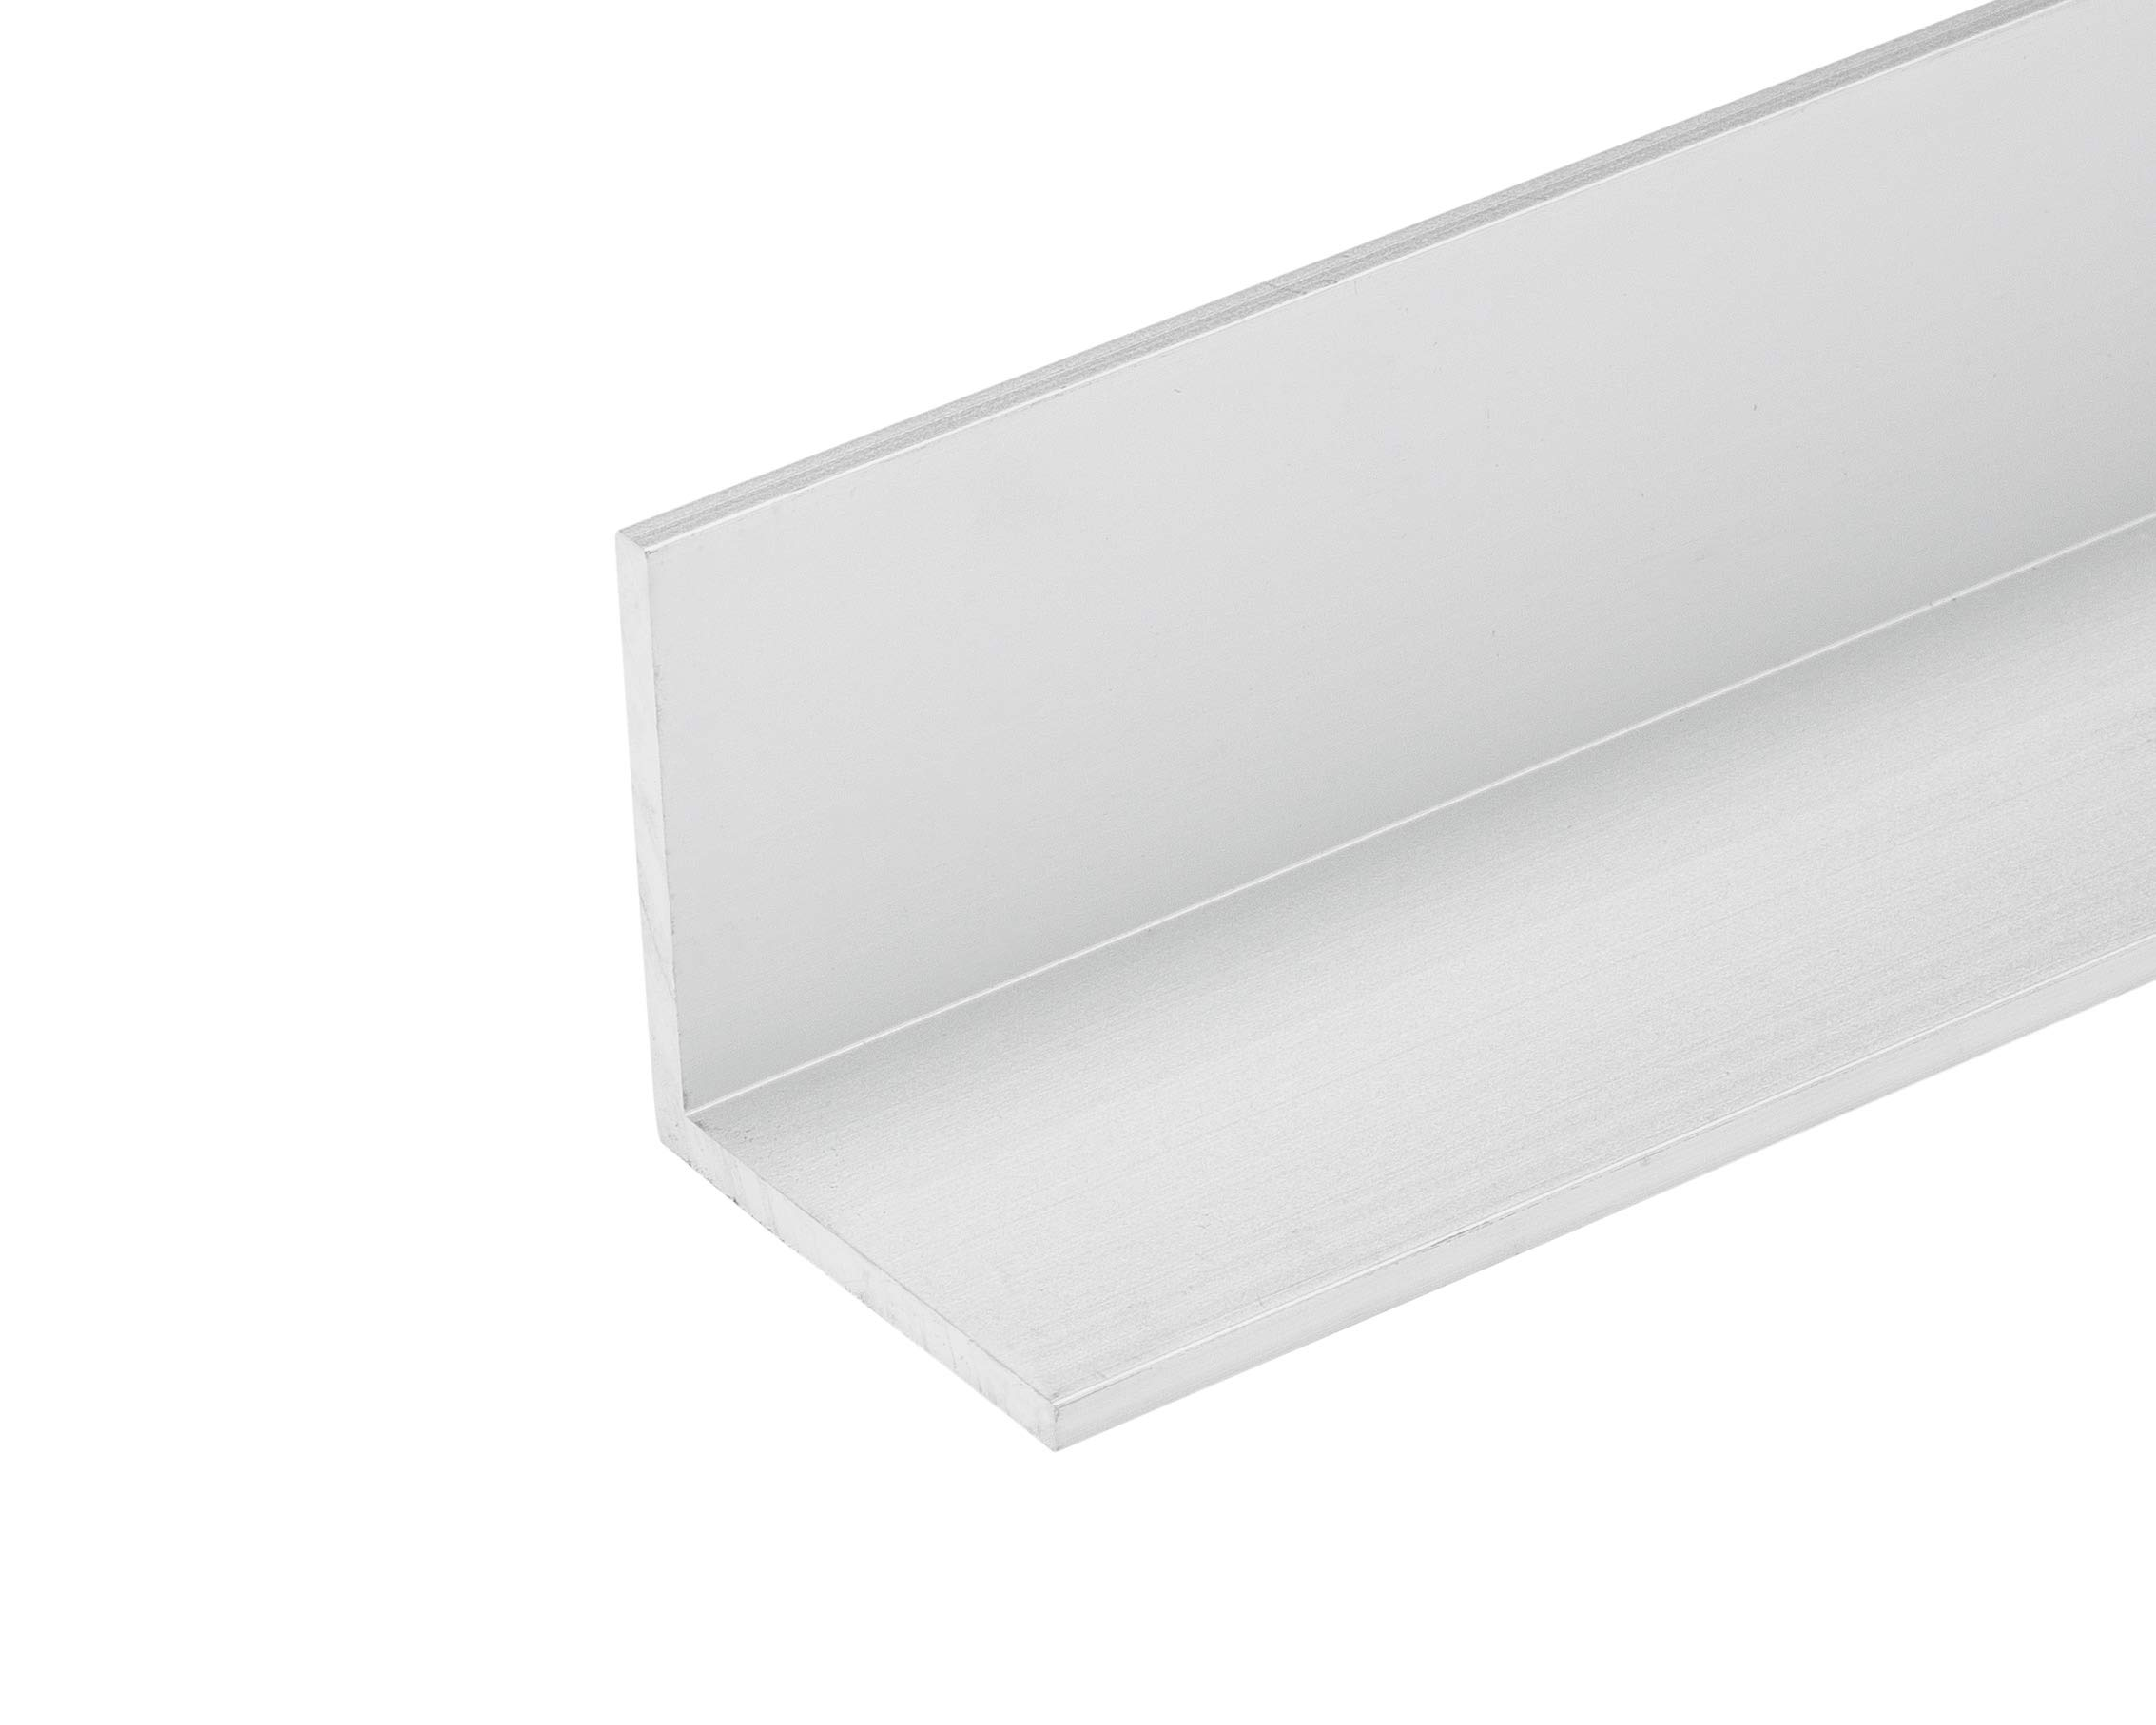 96''L x 2''W x 1/16''T Clear Anodized Aluminum Angle (3 Pack) Made in USA 8 FT 2'' Angle by Randall Manufacturing Co., Inc